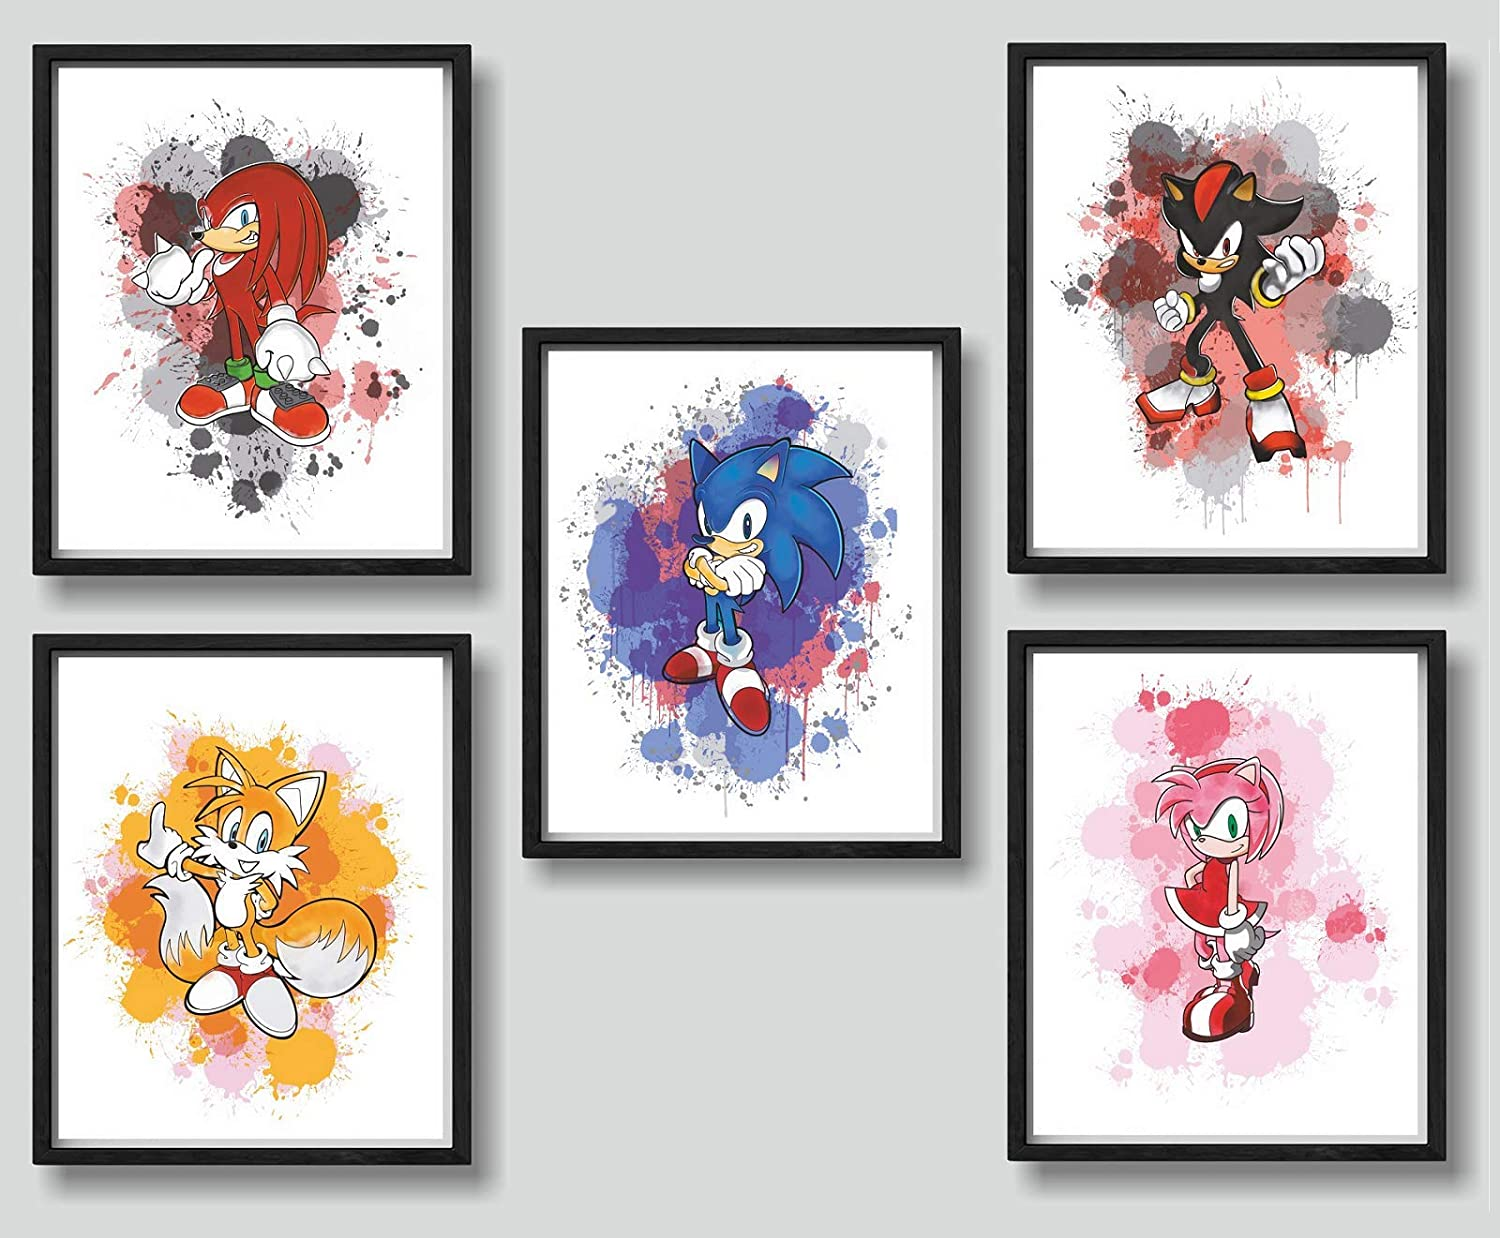 Print A To Z - Sonic The Hedgehog Movie Watercolor Prints, Sonic Watercolor Posters, UNFRAMED Set of 5 (8x10 inches), Sonic Poster For Kids, Sonic Forces Wall Art Decor, Sonic Bedroom Decor for Boys, Sonic Decorations for kids, Sonic Decorations For Birthday Party, Posters For Boys Room, Posters For Girls Room,